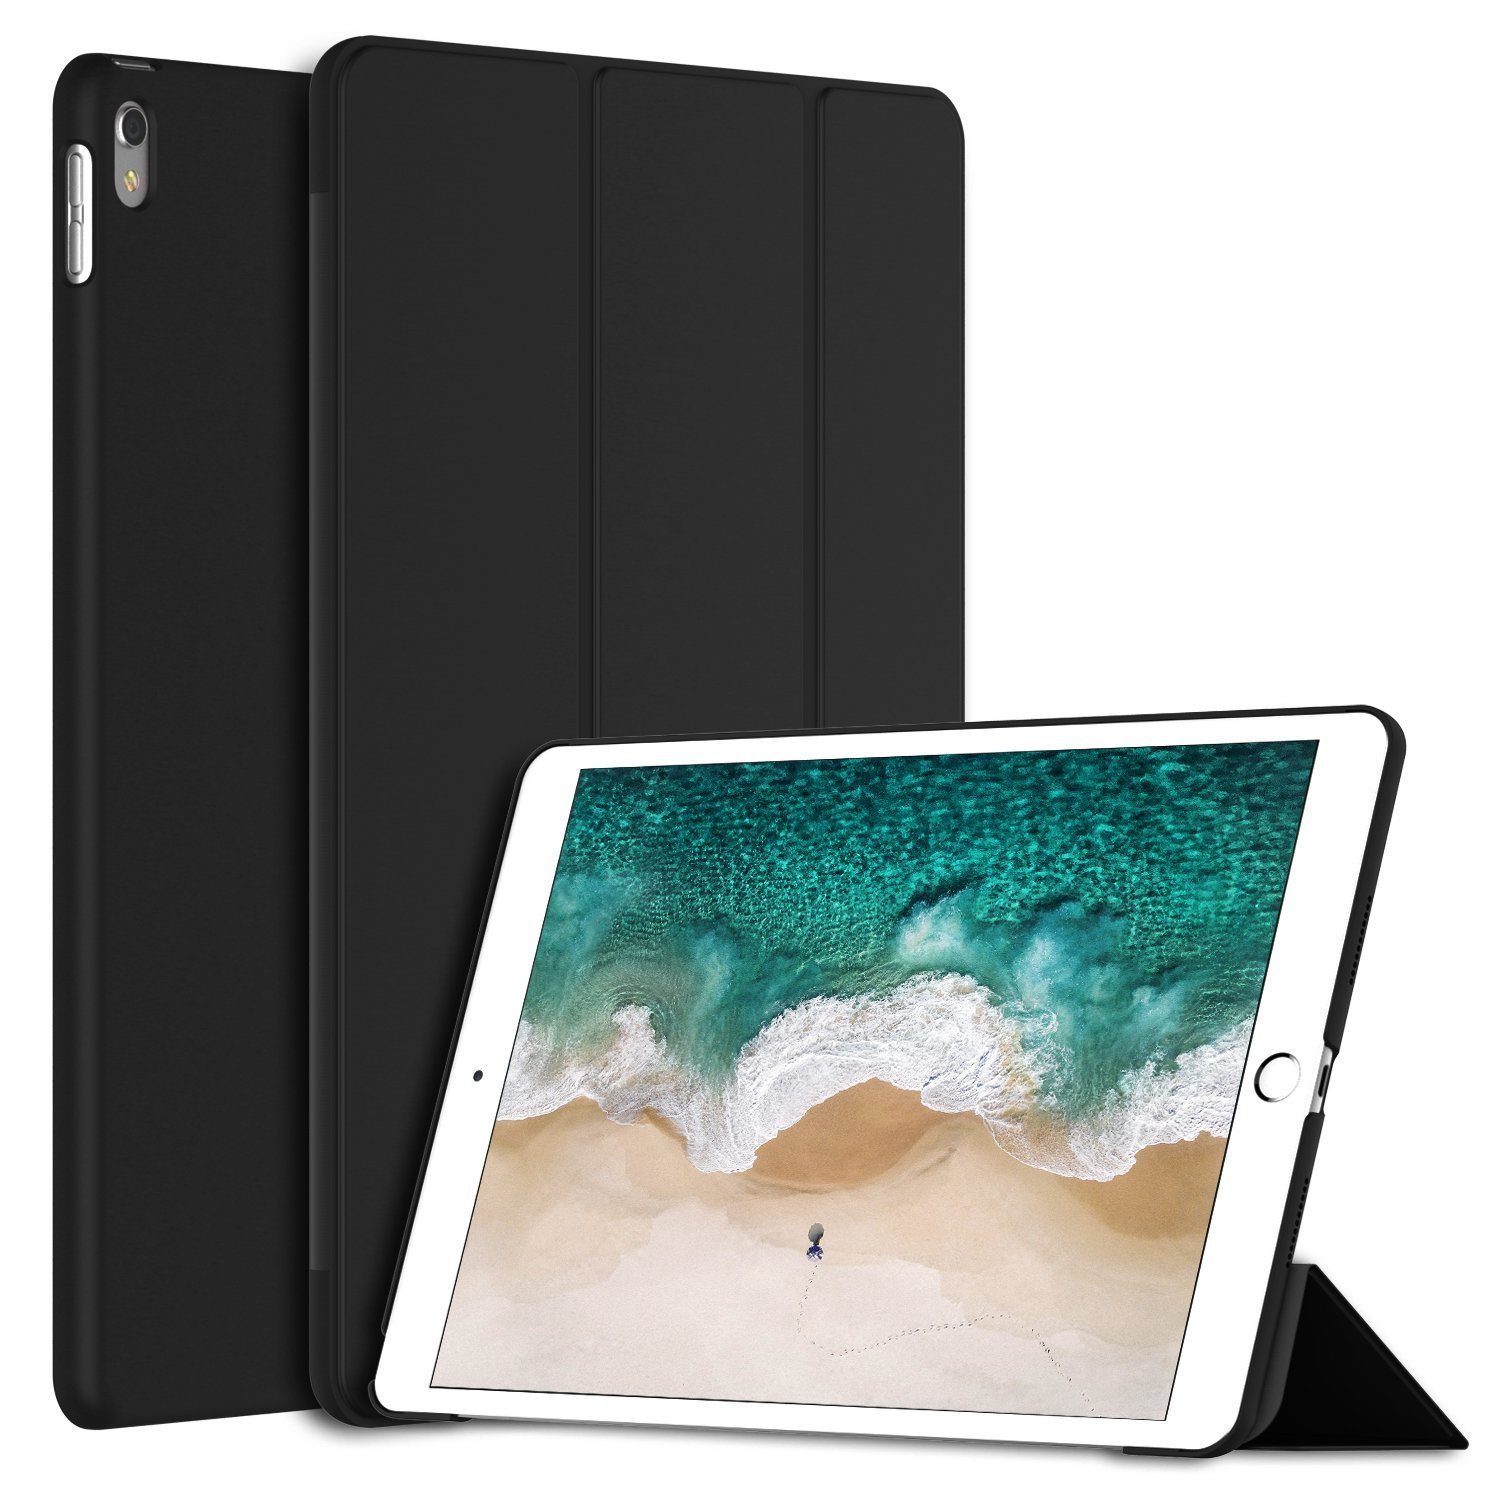 iPad Pro 10.5 Smart Case Official Image